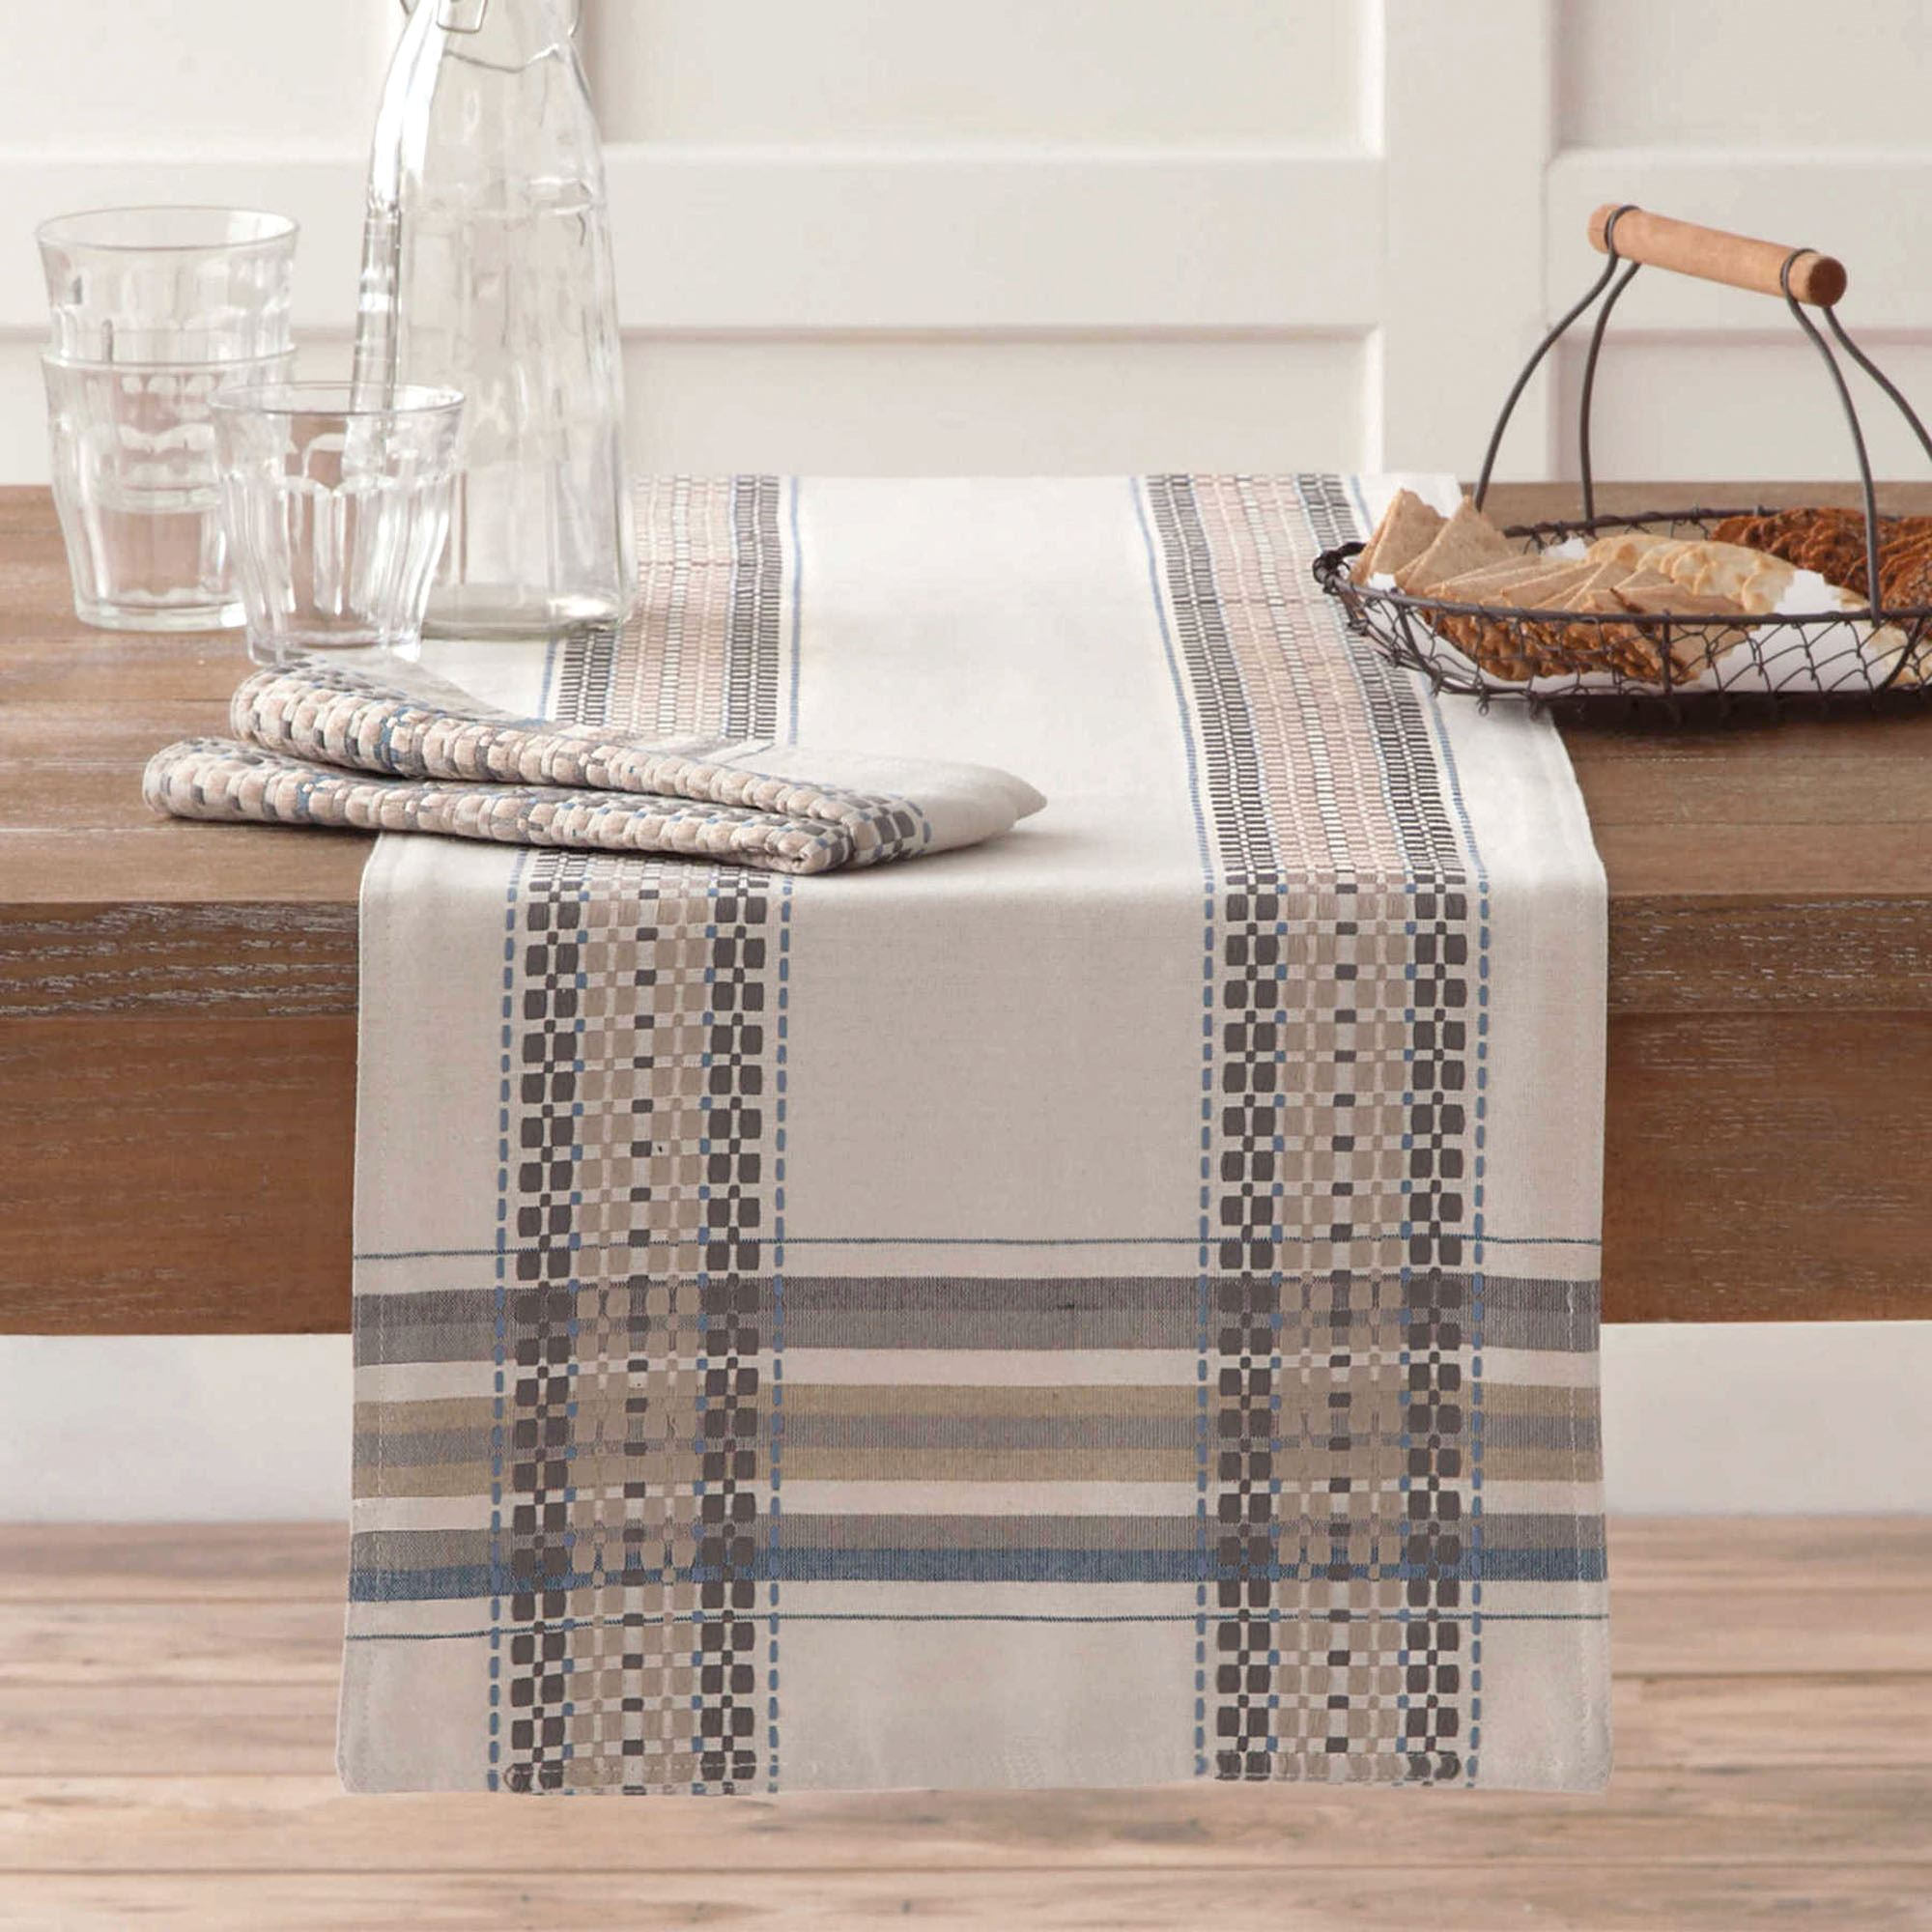 French Picnic Striped Table Runner And Table Linens